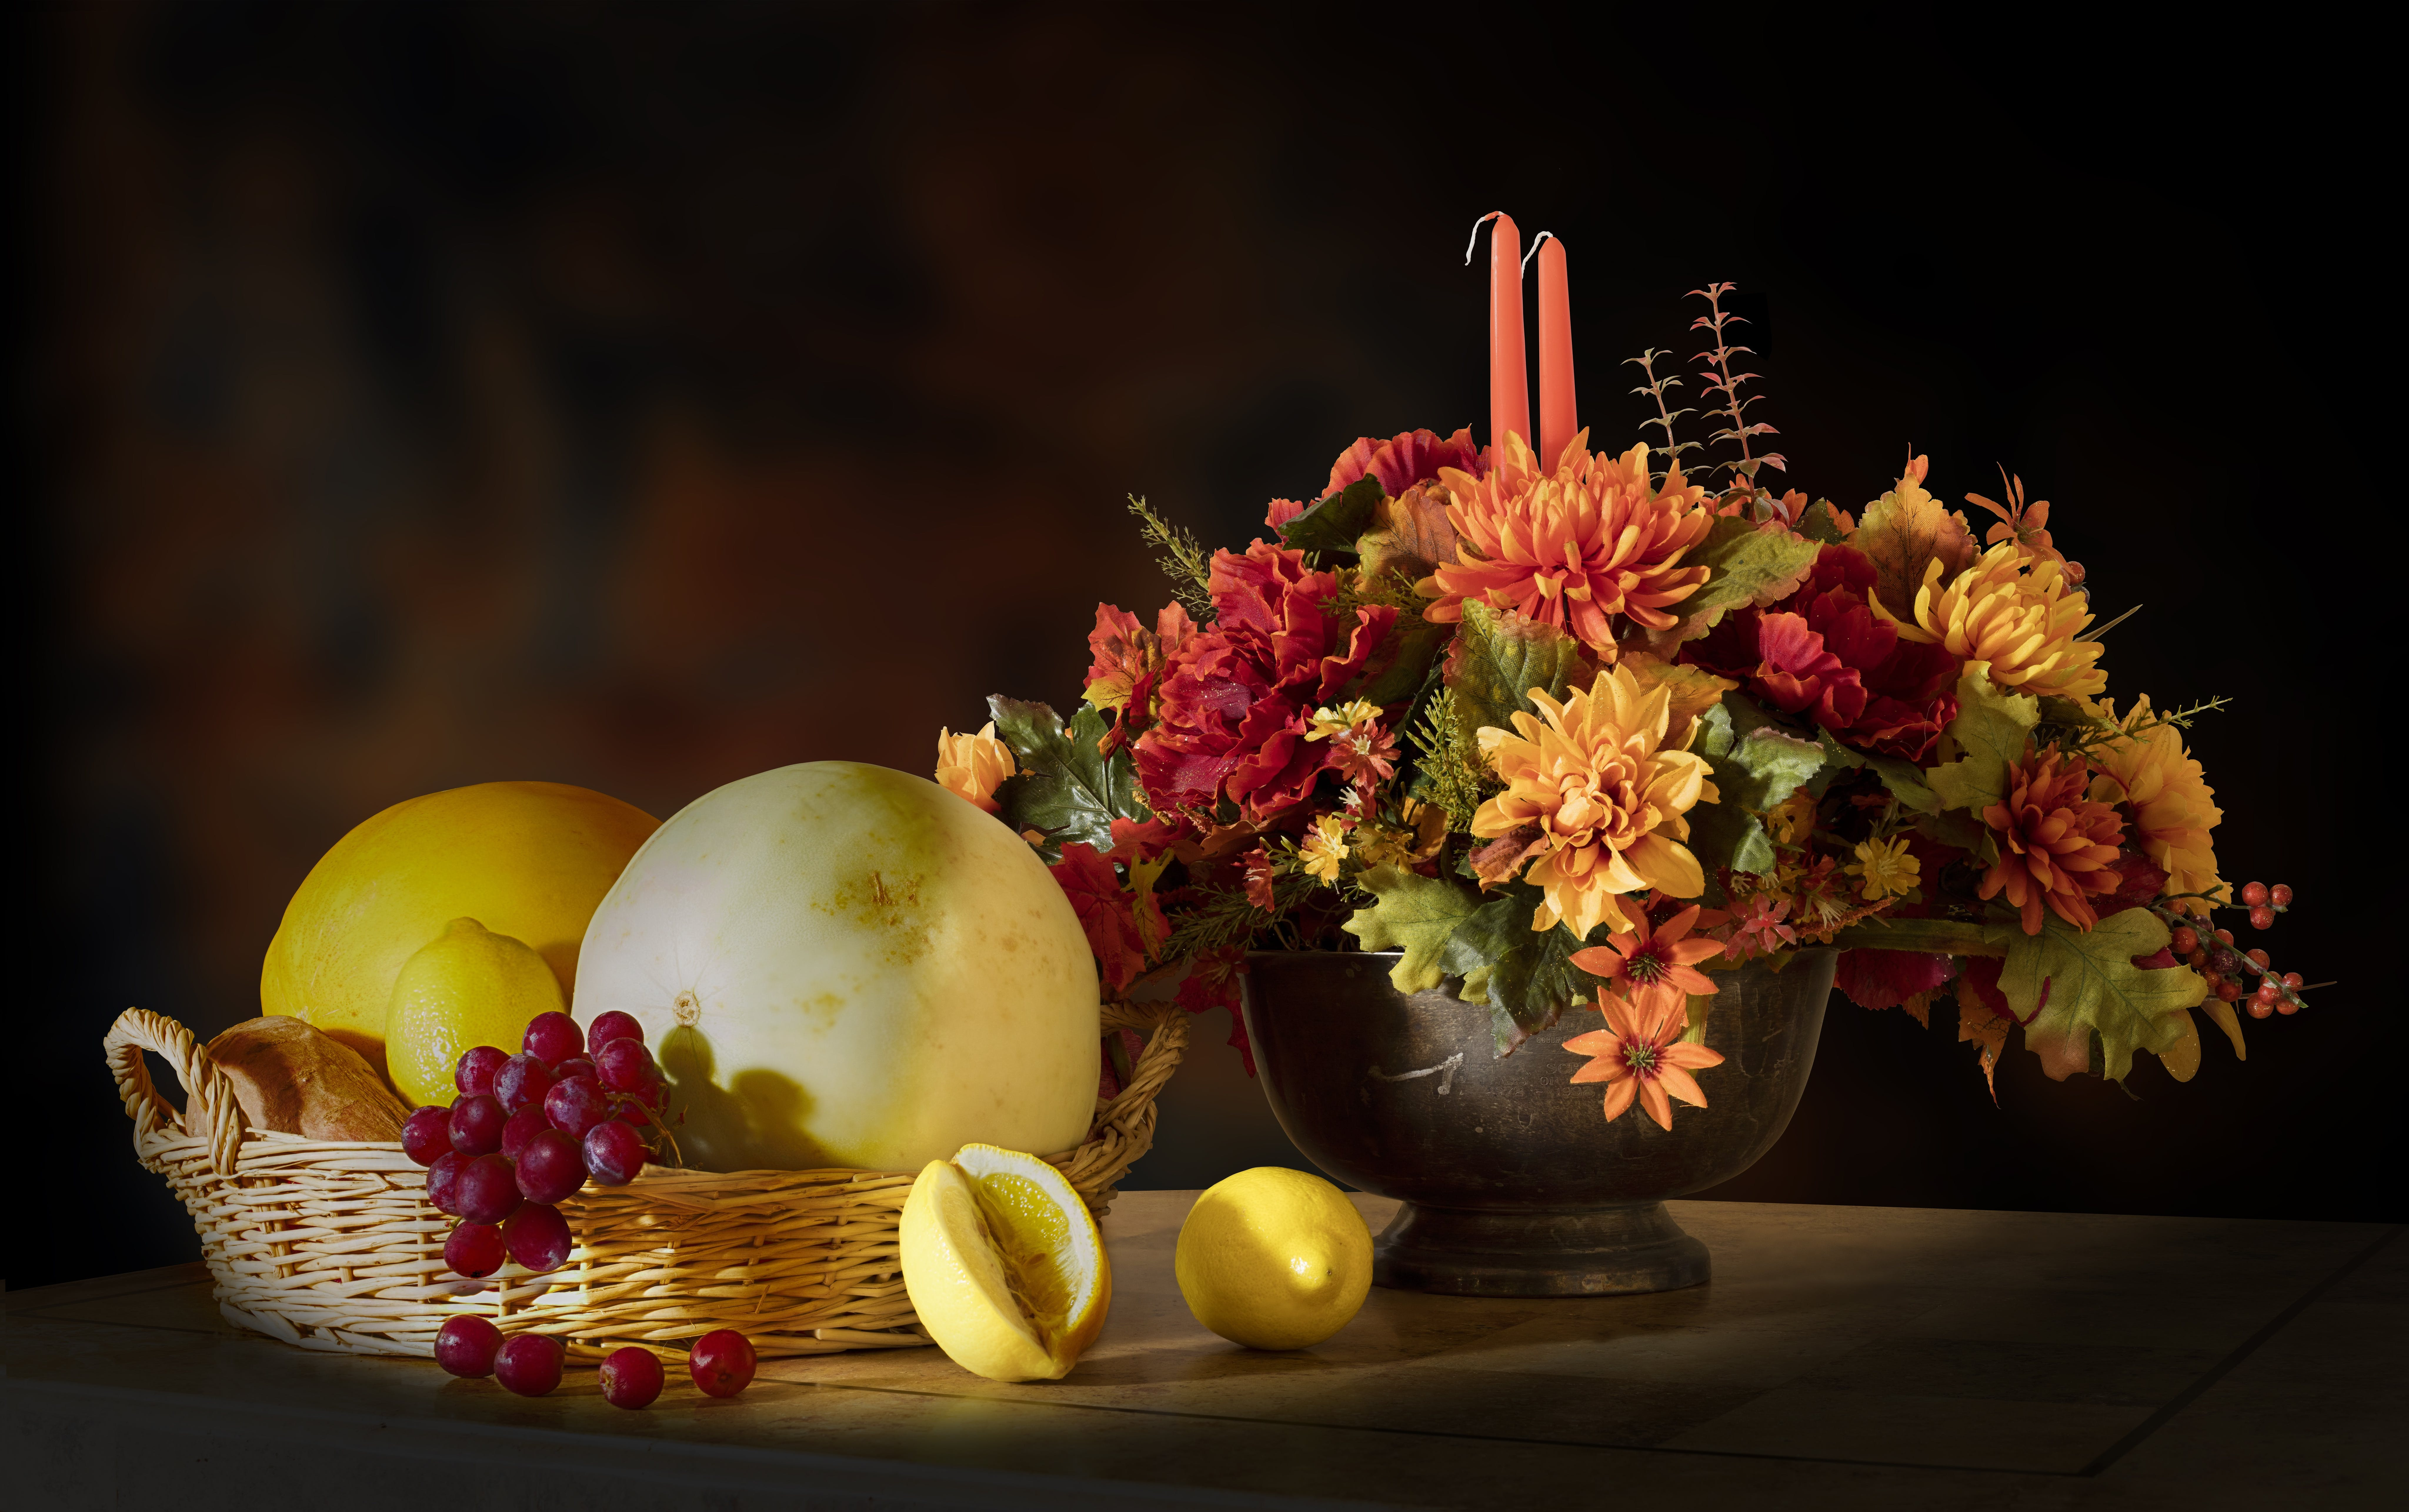 Still Life of Flowers and Fruits on Table